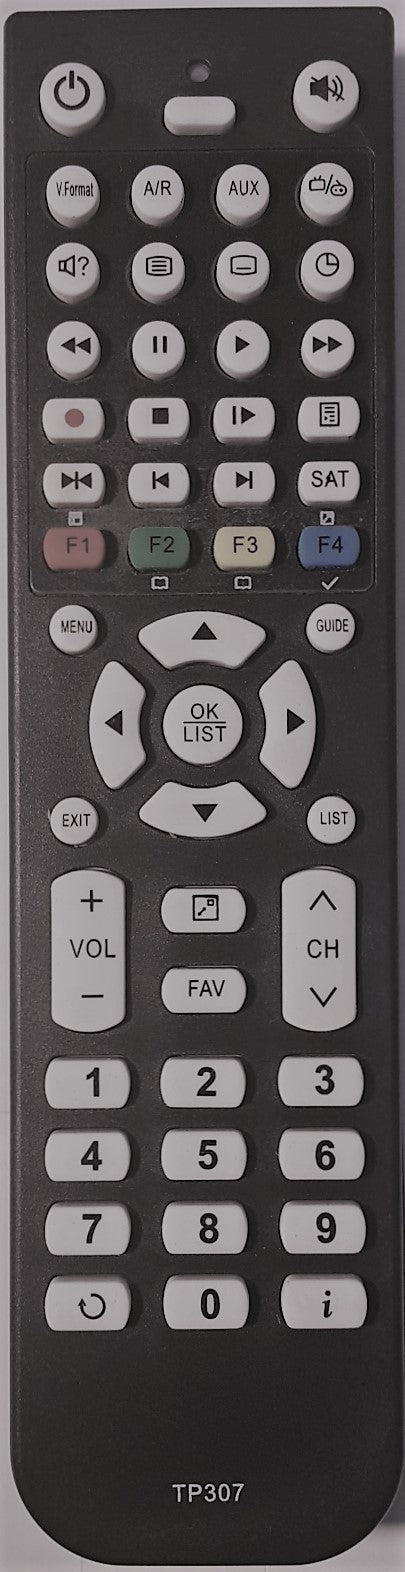 REPLACEMENT TOPFIELD REMOTE CONTROL TP307 TP807 - TRF7160  TRF-7160  DVR PVR  RECORDER - Remote Control Warehouse